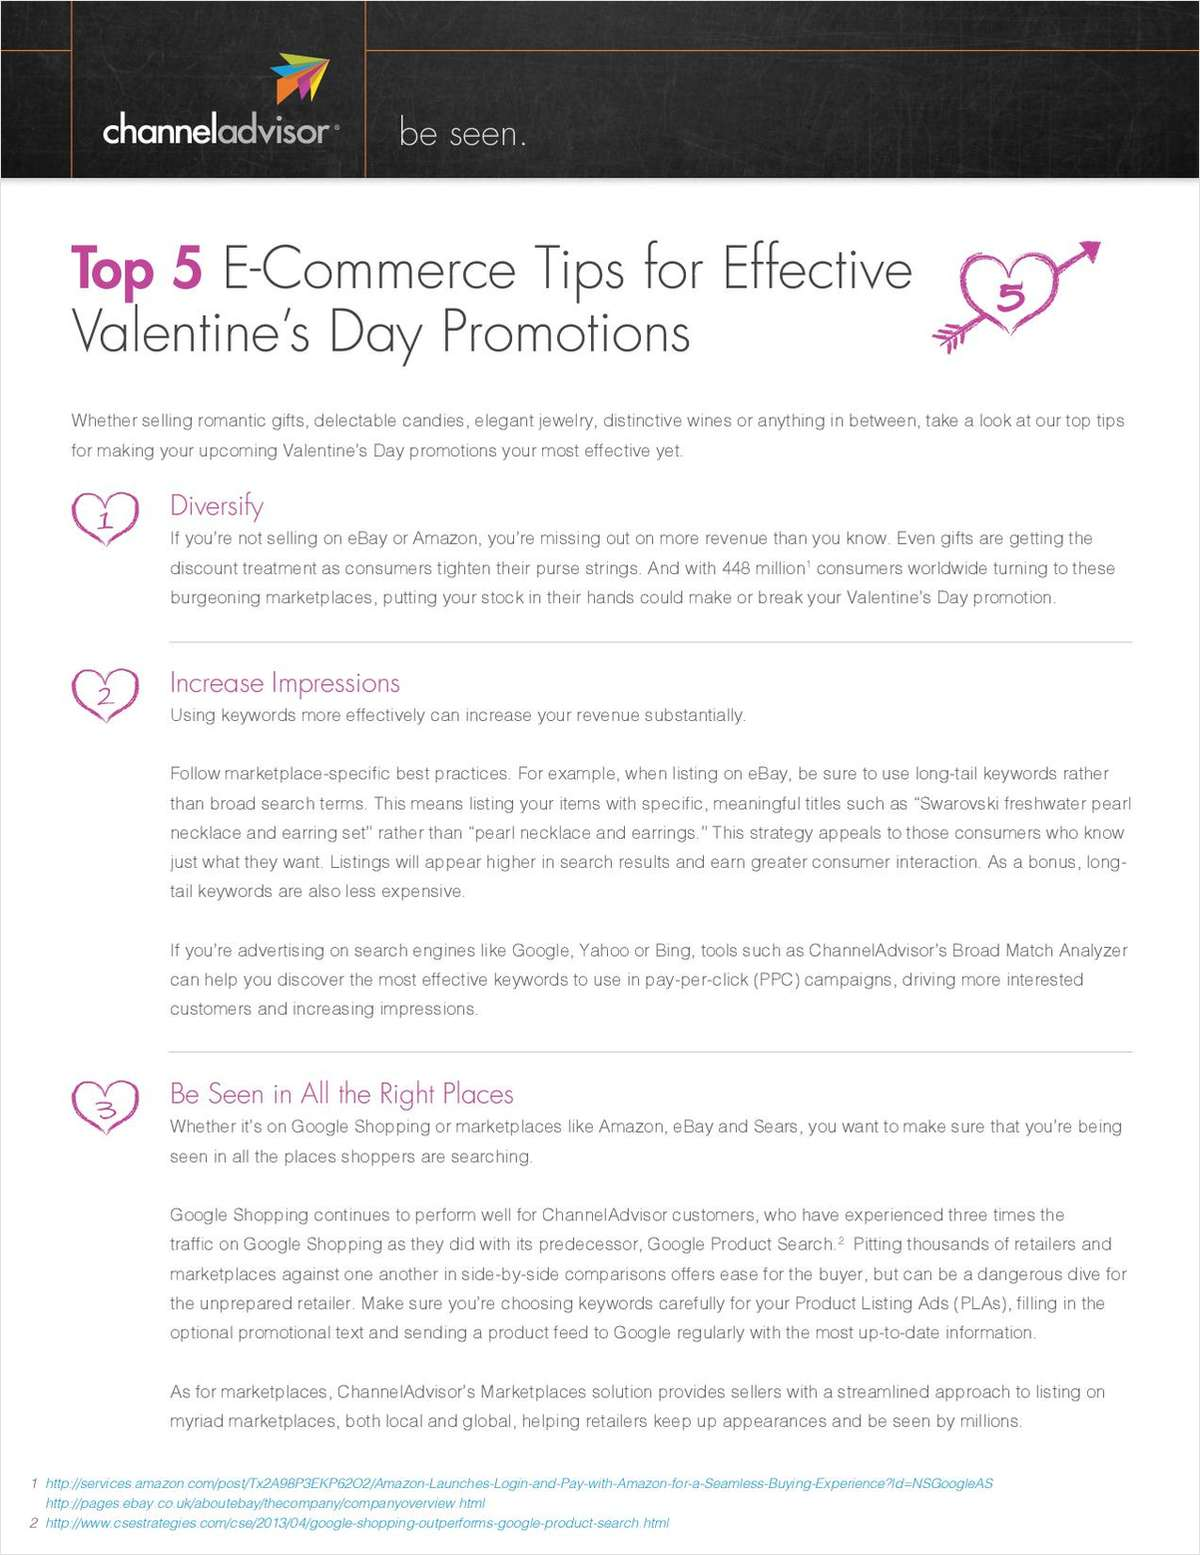 Tips for Effective Valentine's Day Promotions